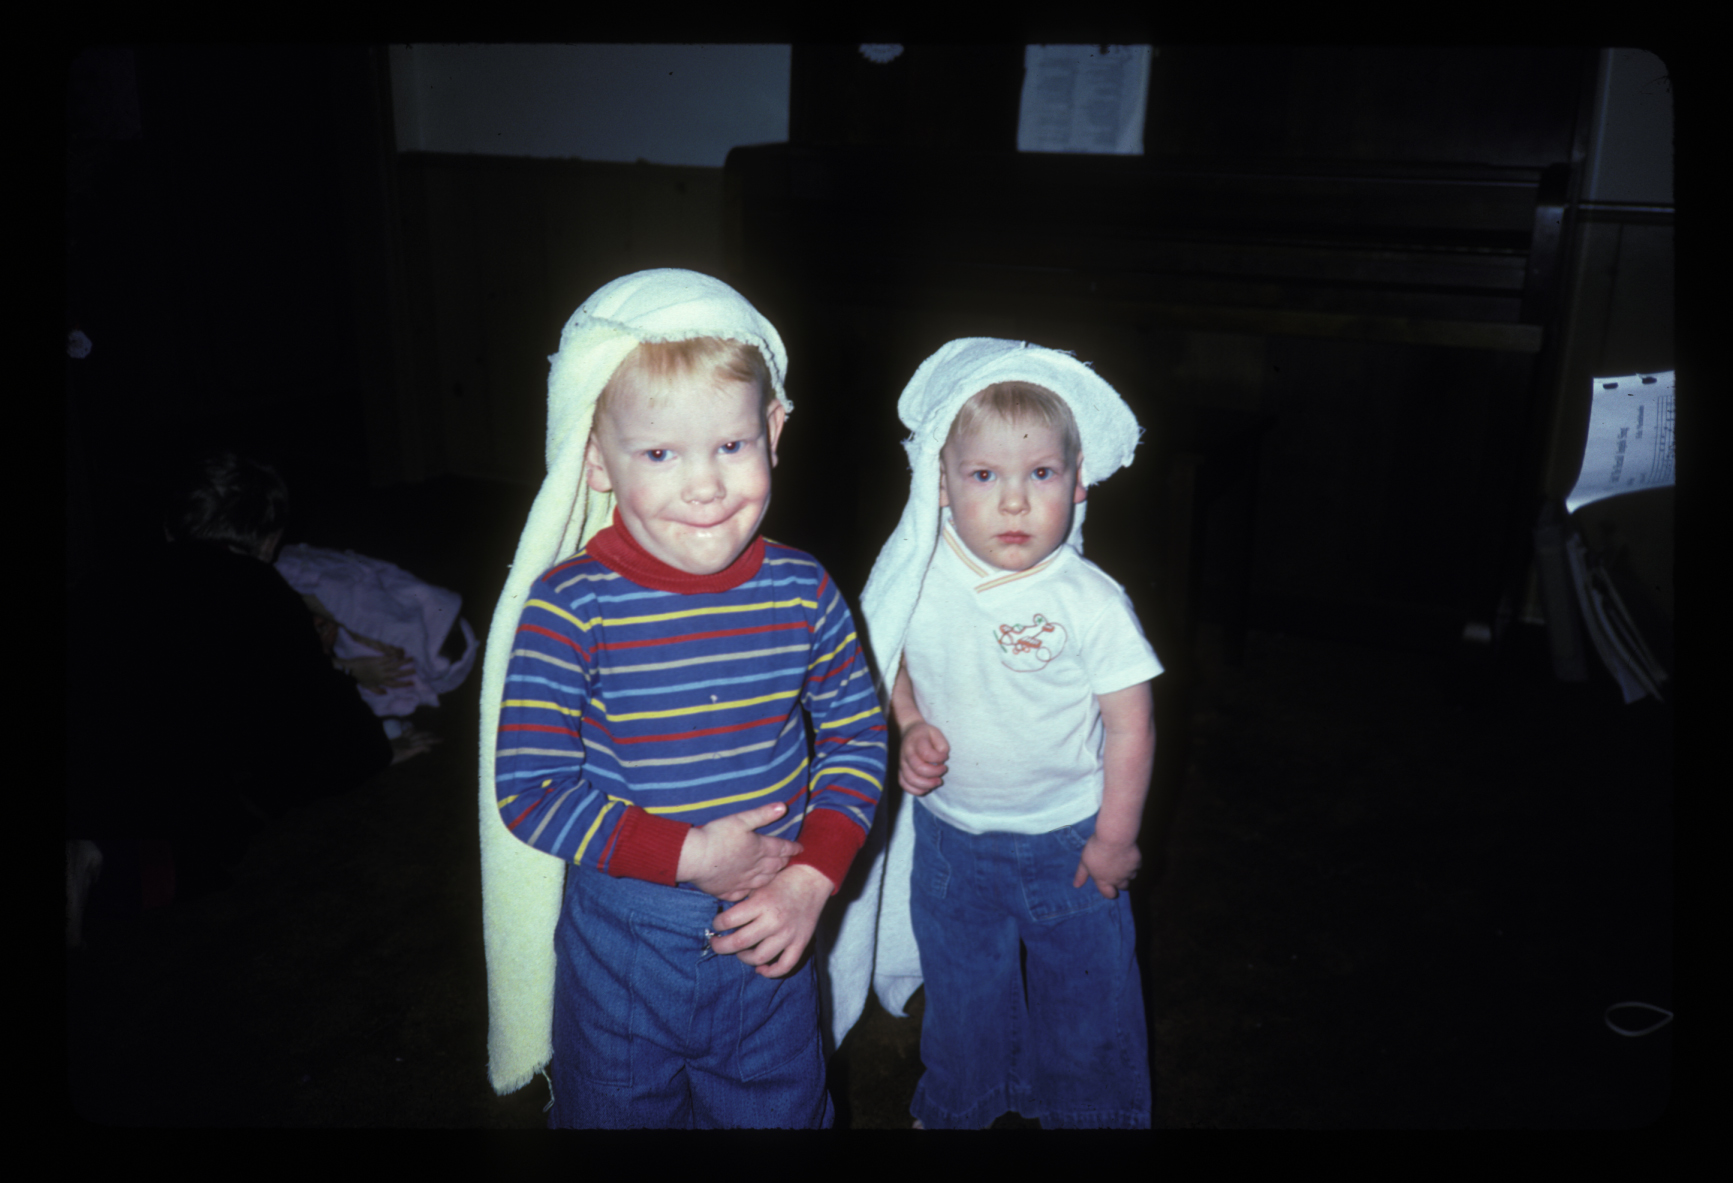 Image: Boys with towels on their heads